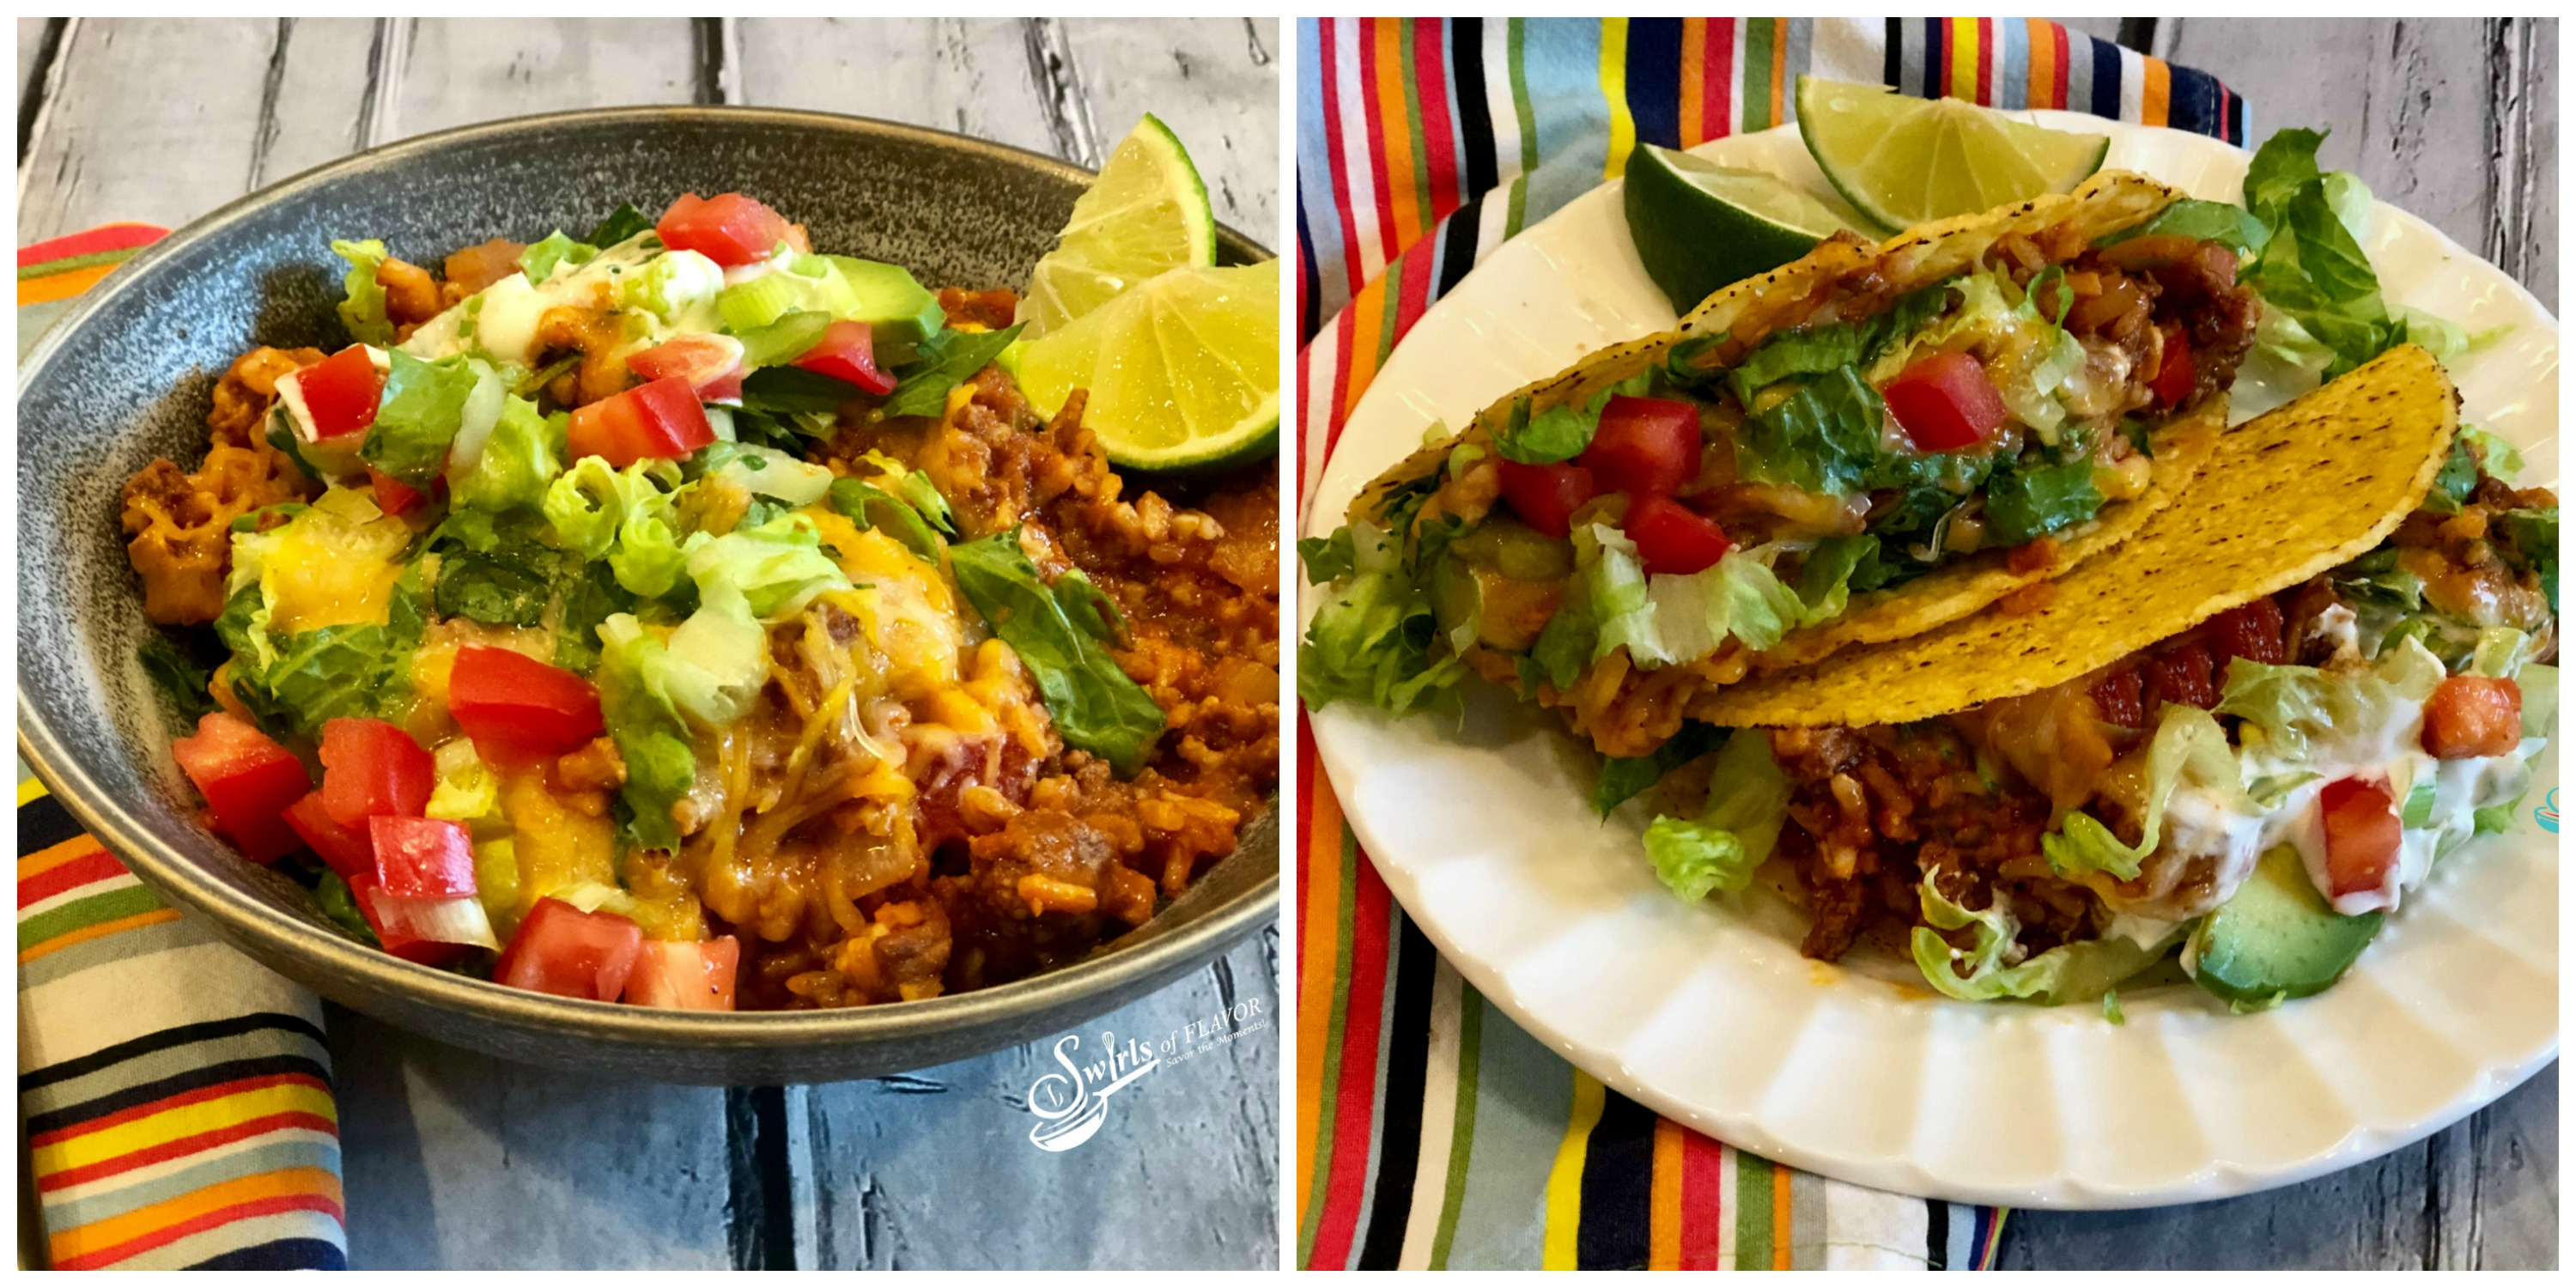 Taco Beef and Rice served in a bowl and Taco Beef served in taco shells